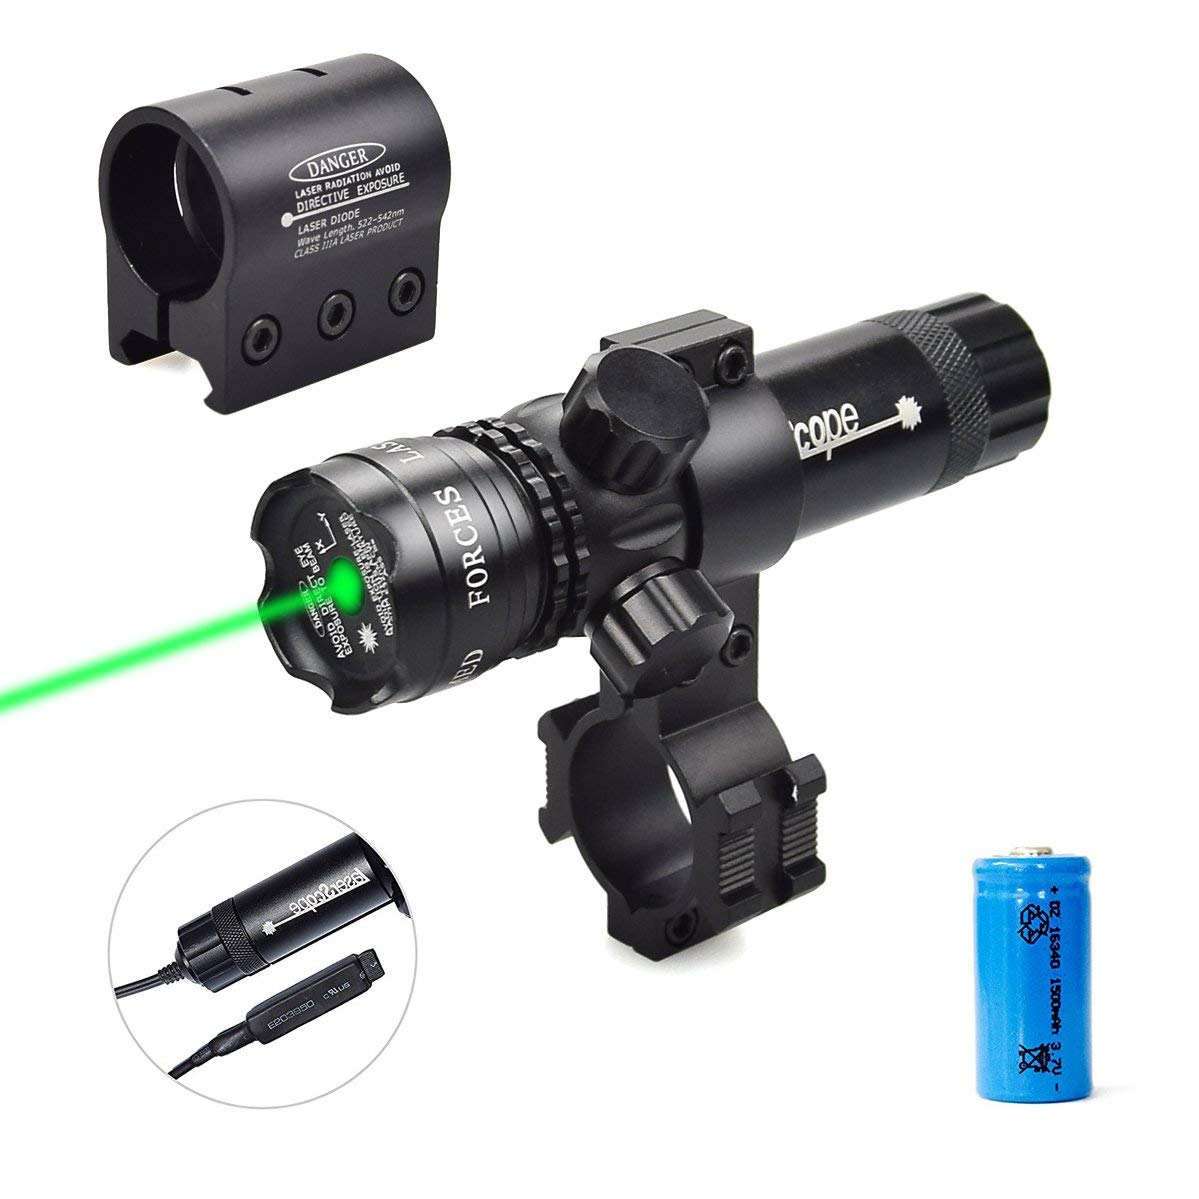 Twod Gun Sight Laser Green Dot 532nm Rifle Scope with 20mm Picatinny Mount & 1'' Ring Mount Adapter Remote Pressure Switch by Twod